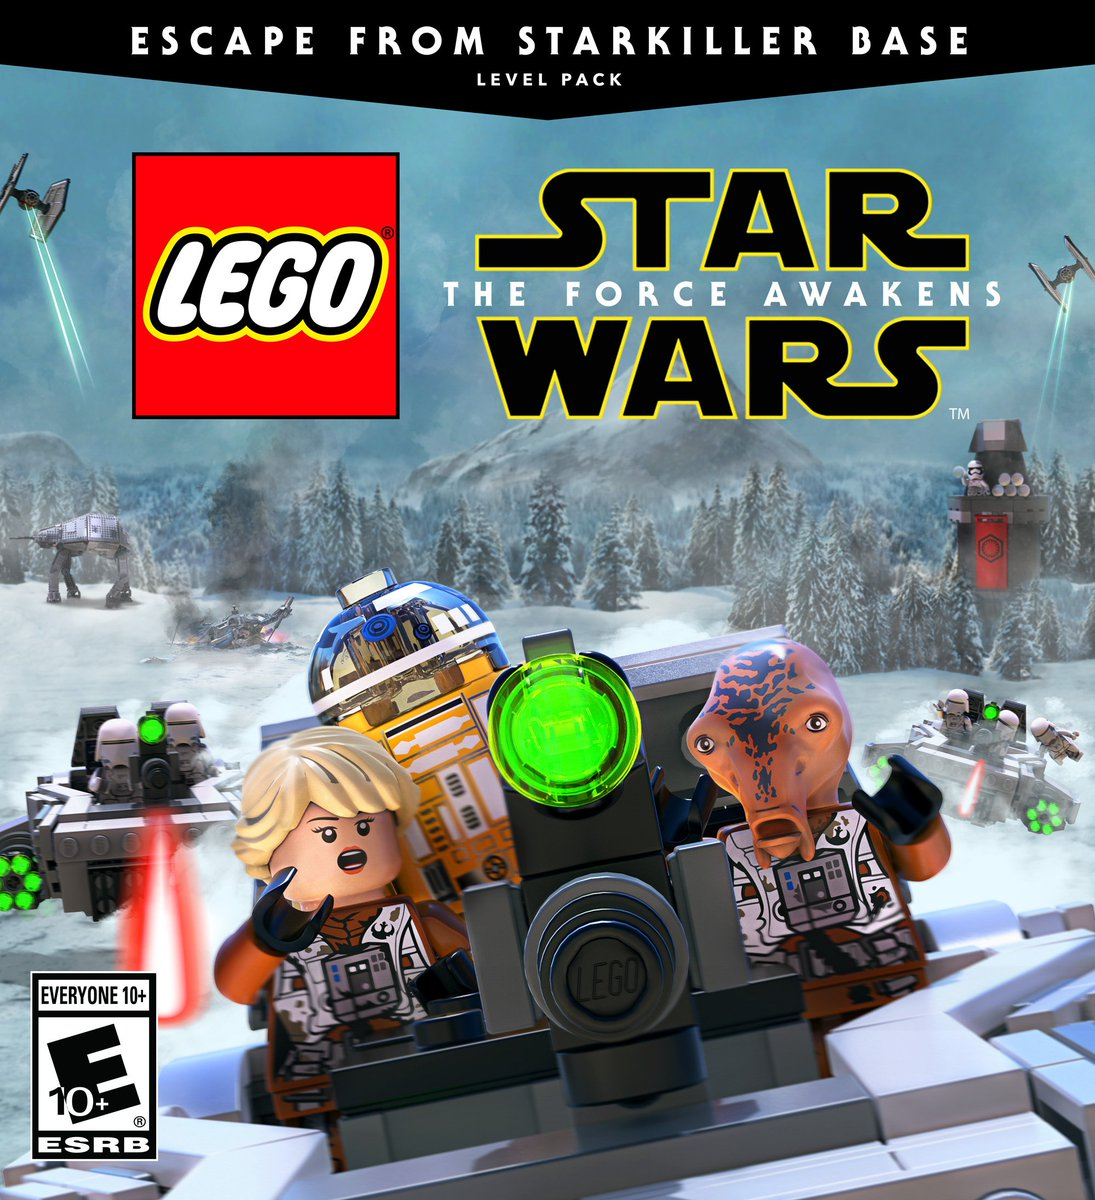 LEGO Star Wars Game   LSWGame    Twitter